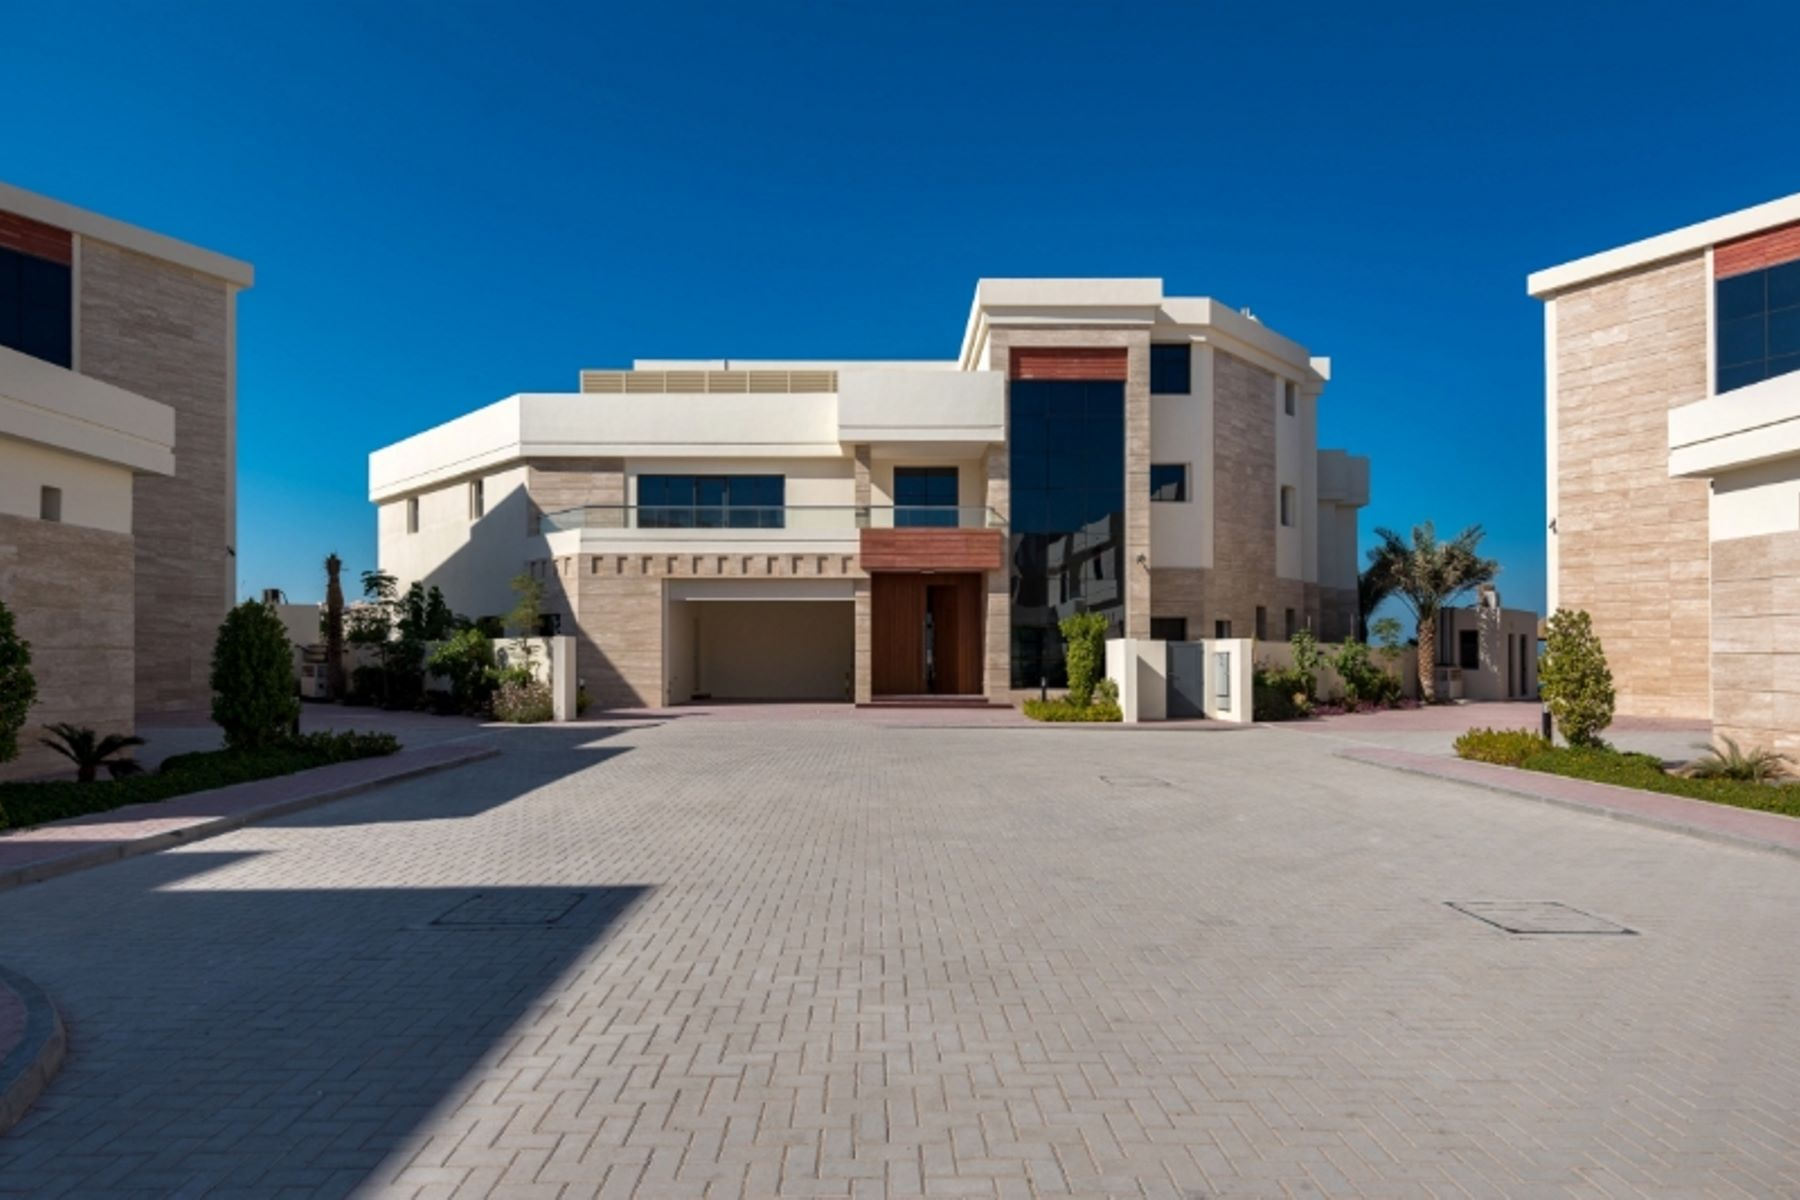 Single Family Home for Sale at Brand New Tip 5 Luxury Villas Panoramic Sea Views Dubai, Dubai United Arab Emirates